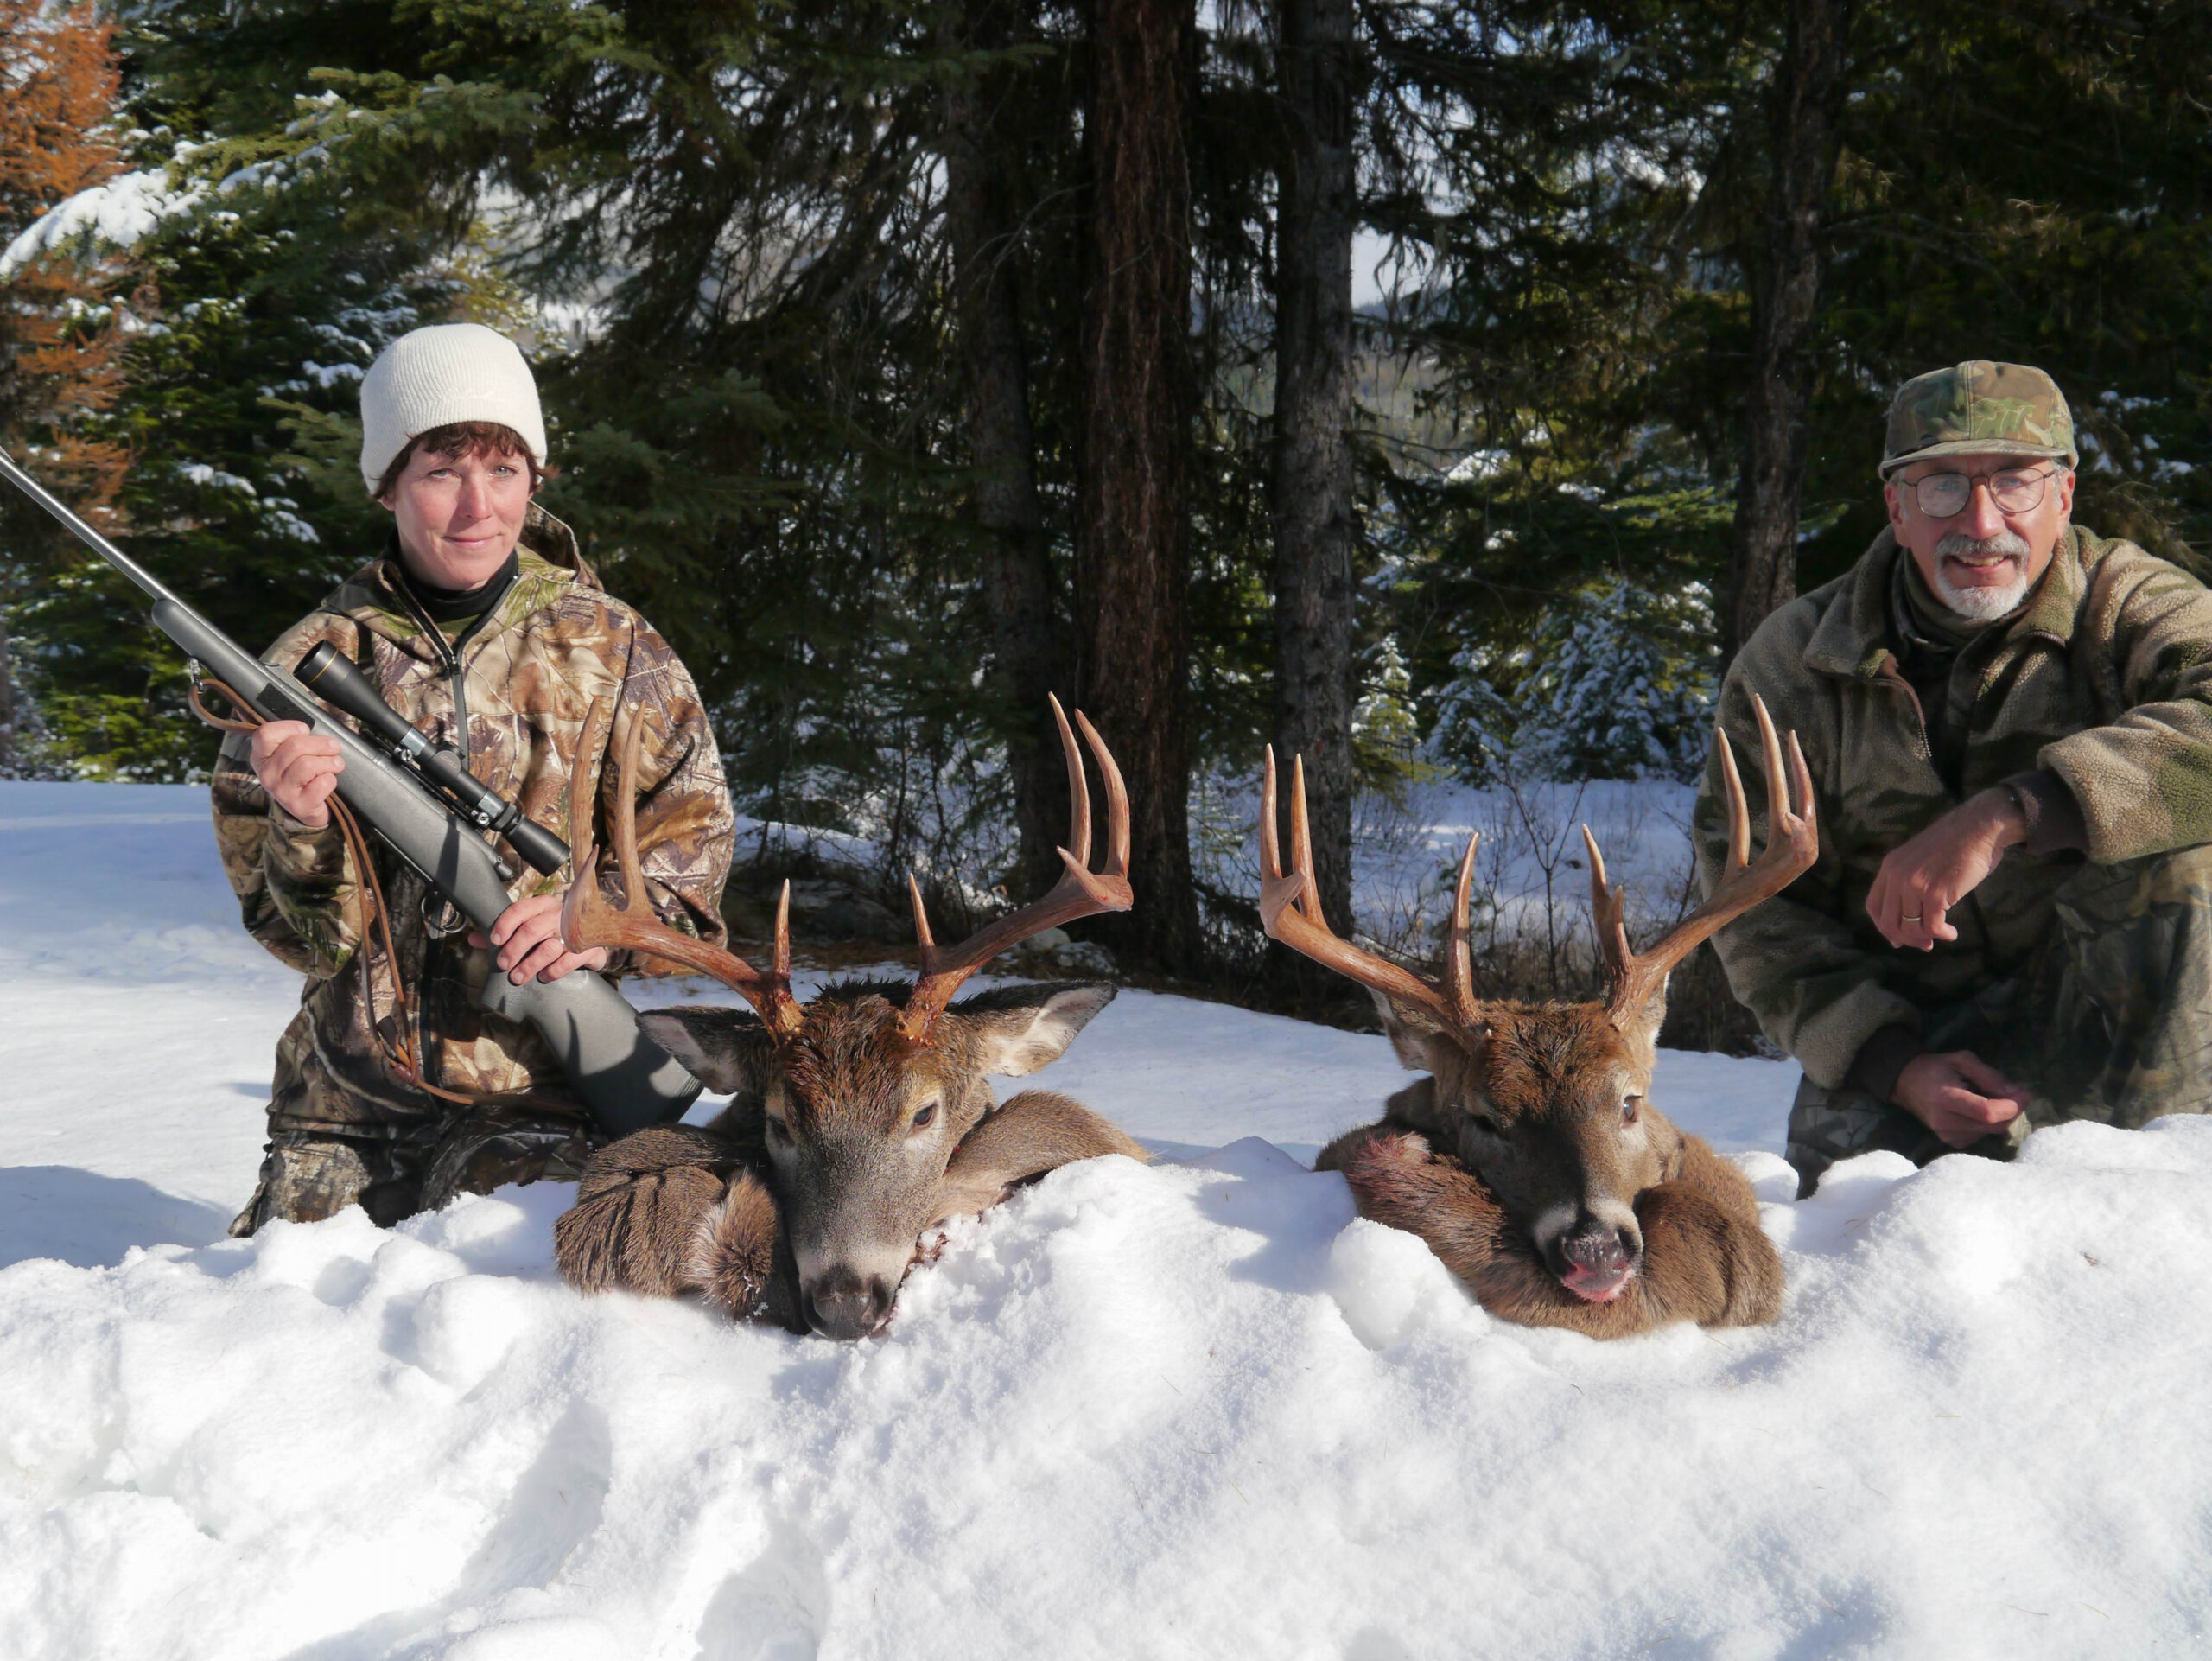 Montana Hunting Report: Whitetail Deer - Linehan